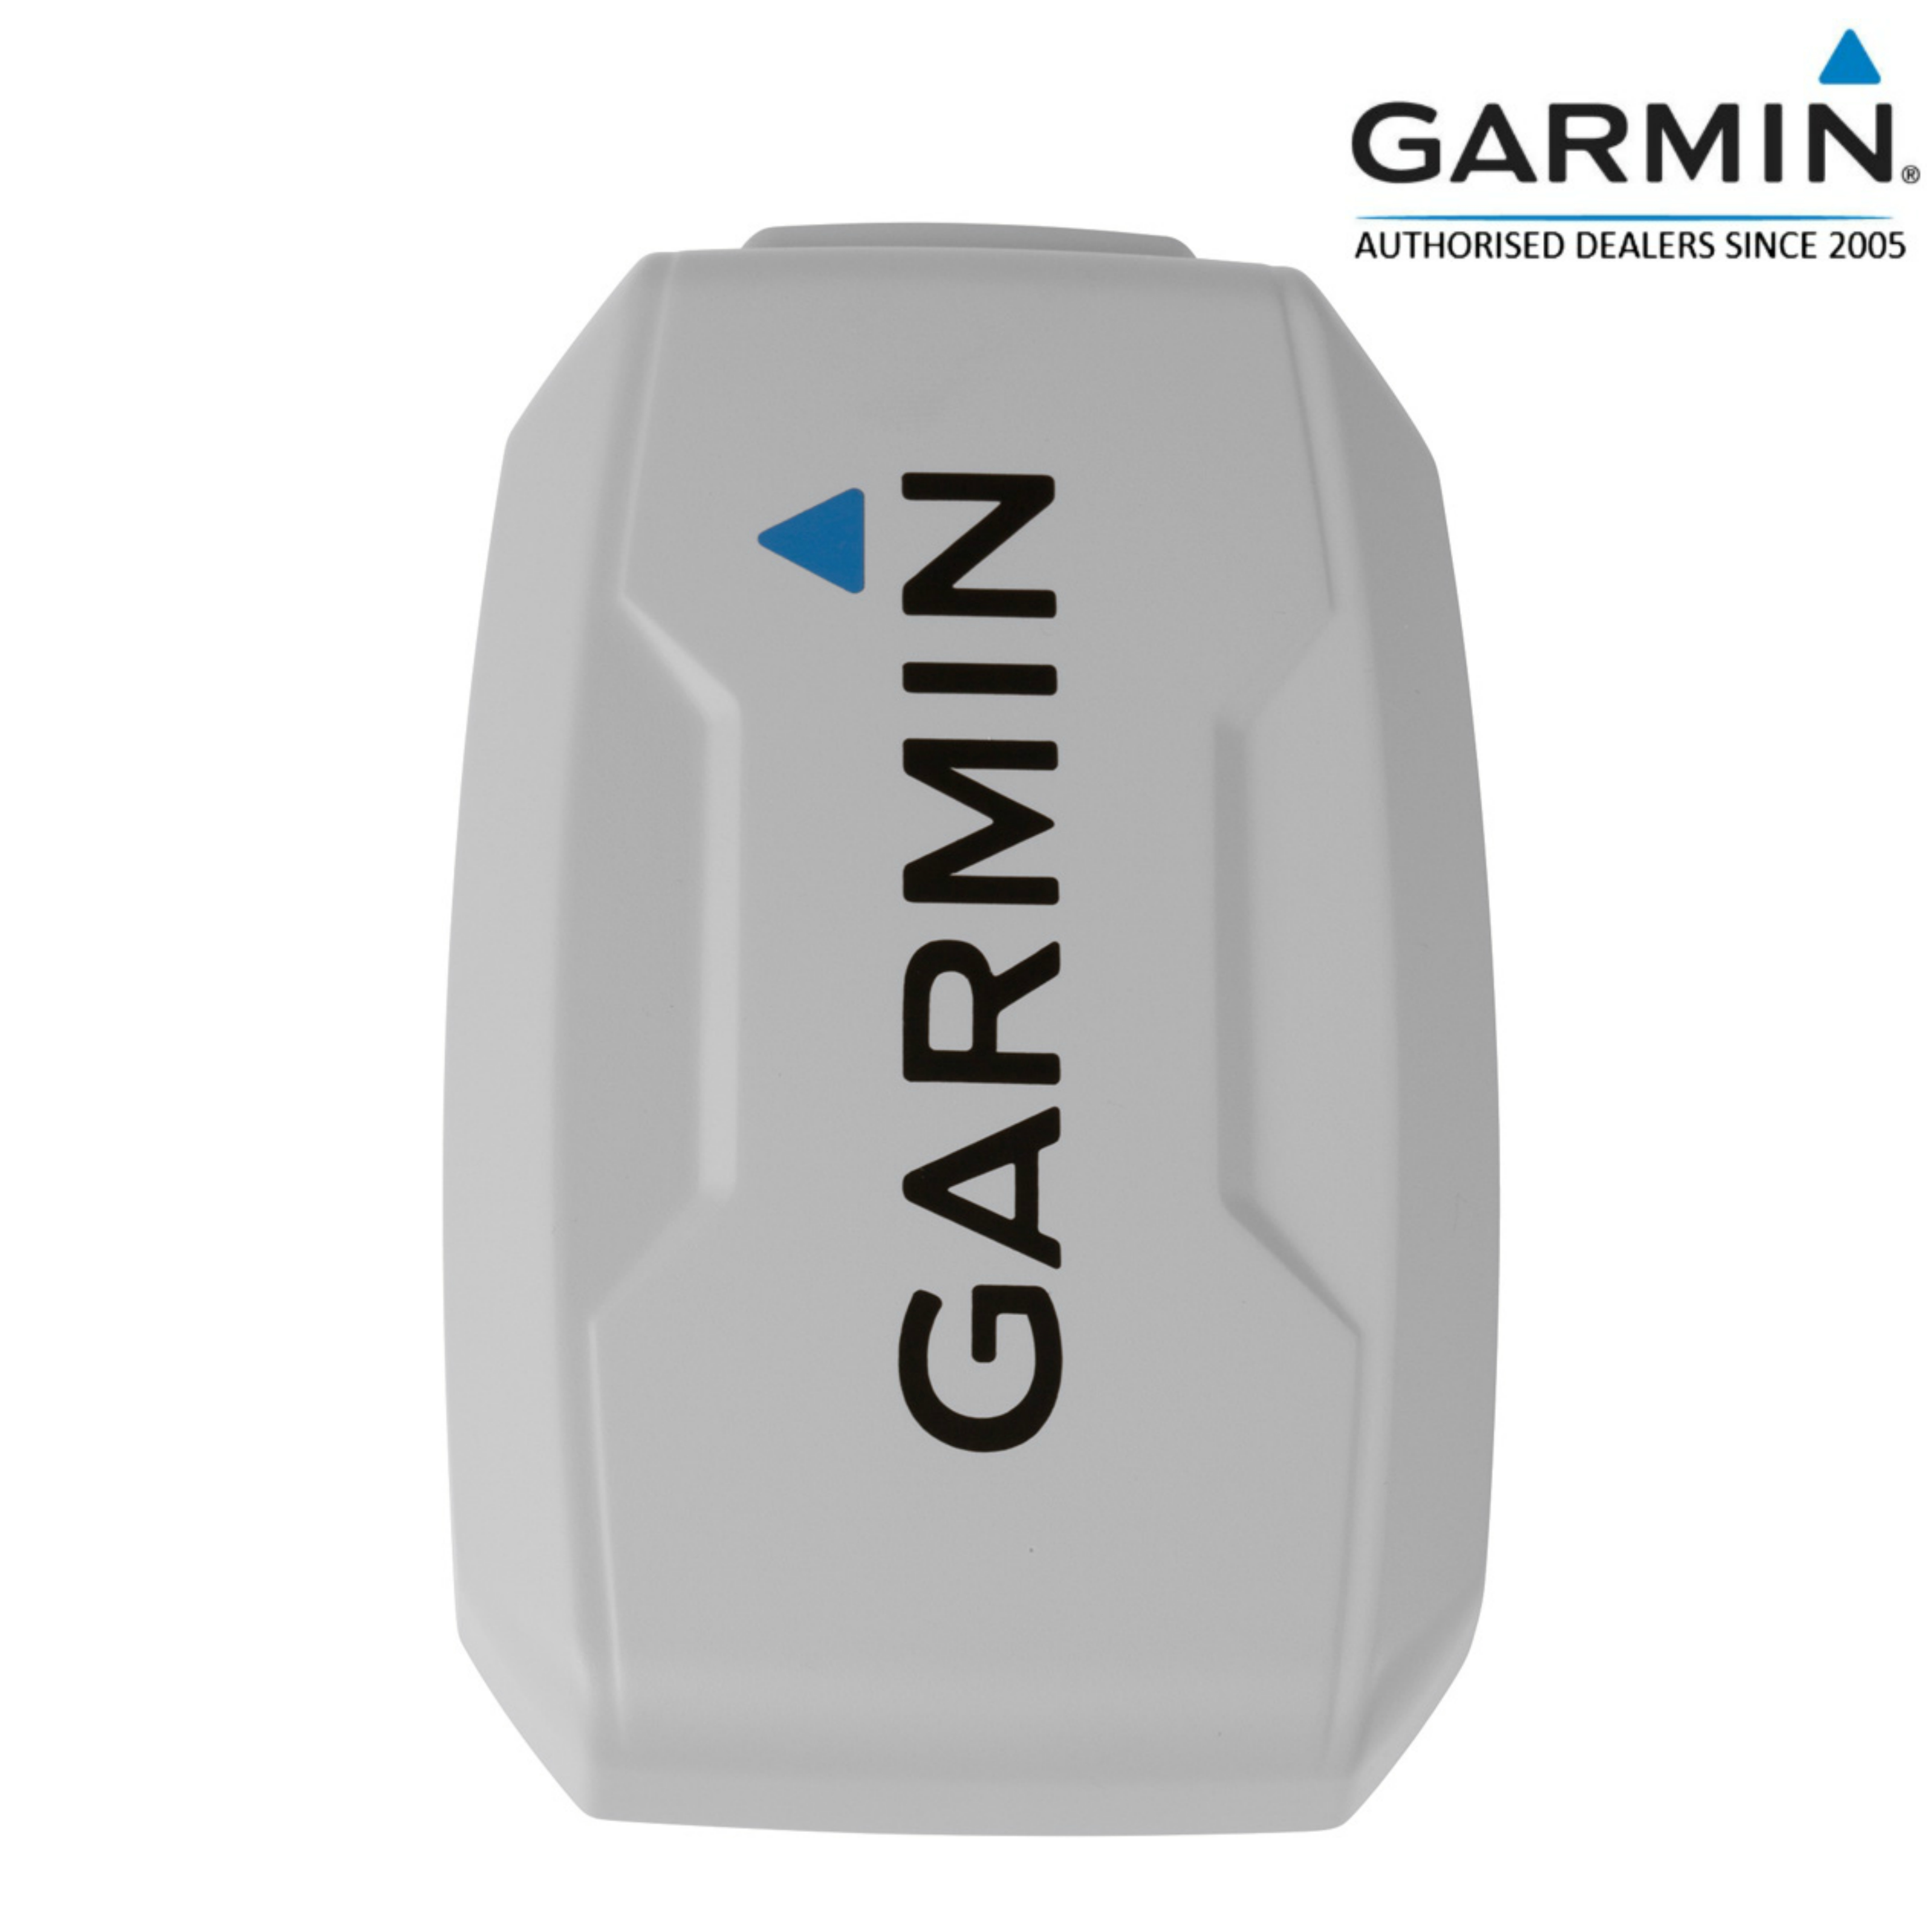 Garmin Dust Water Harsh Marine Environment Protective Cover For STRIKER 4/4cv